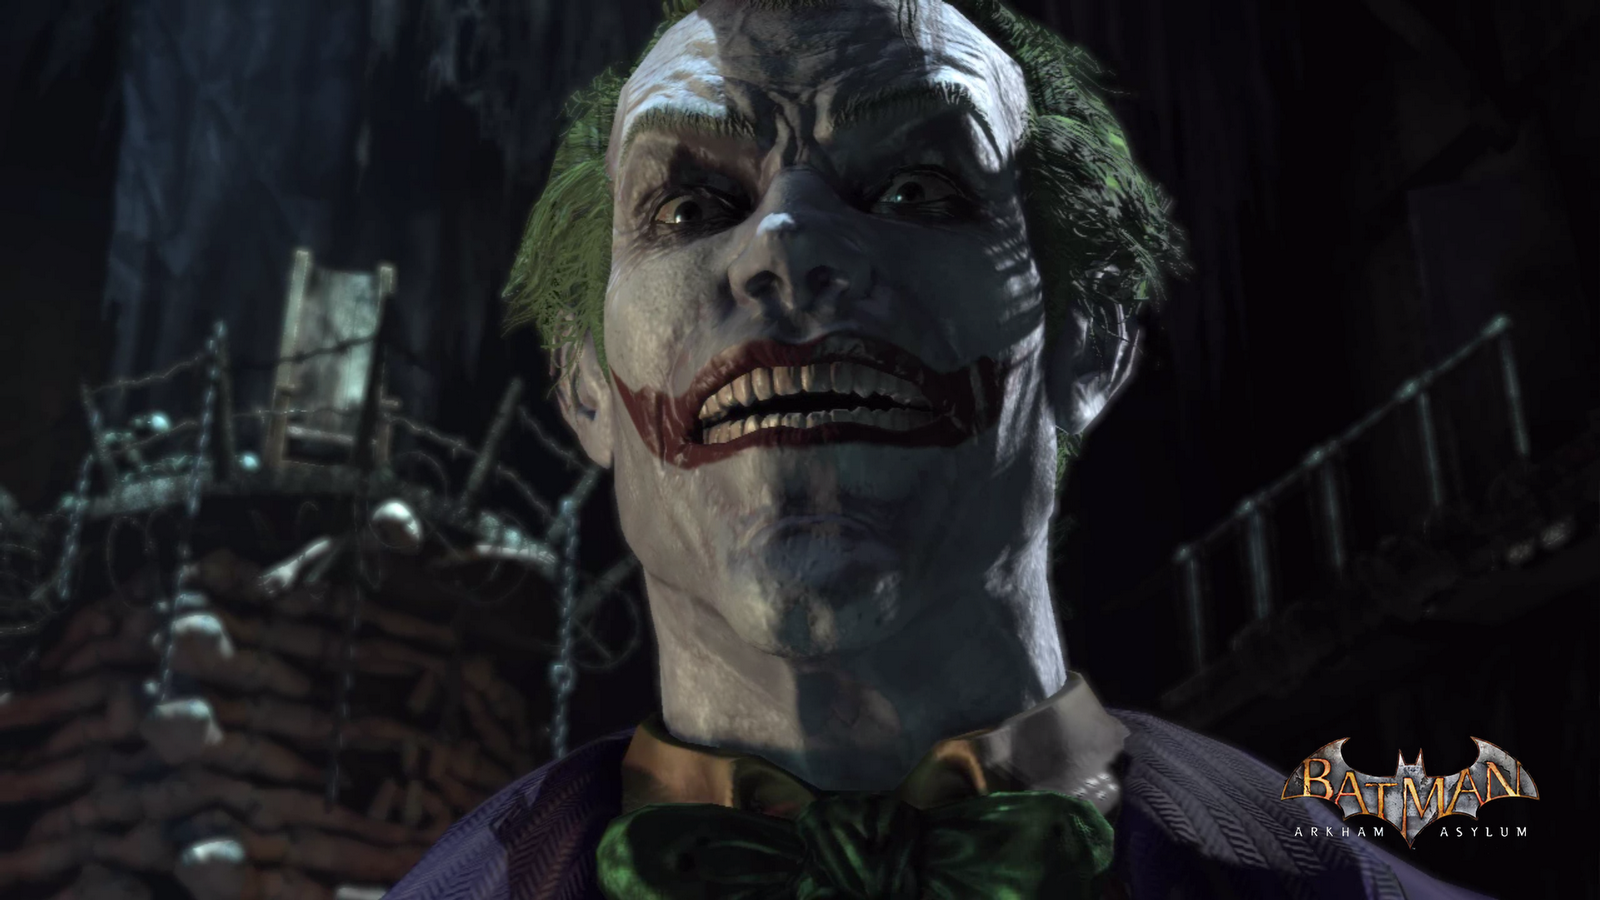 Download Joker Batman Arkham Asylum Wallpaper Loadpaper Free